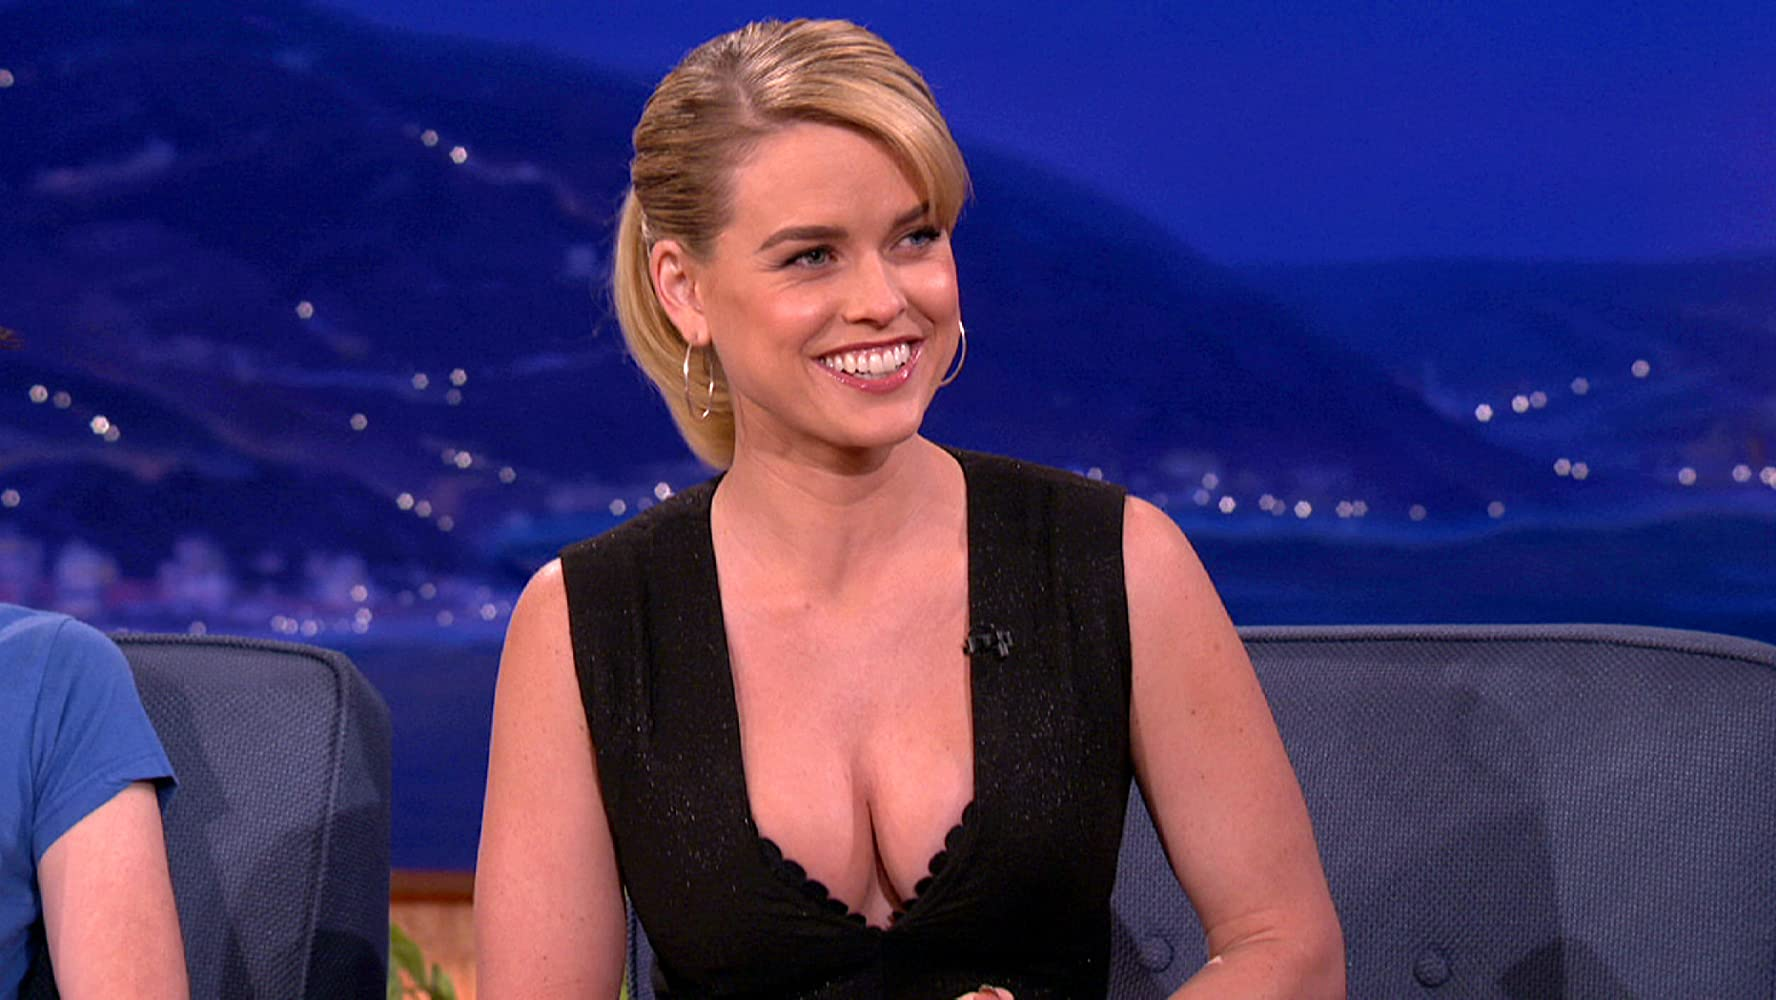 Alice Eve nudes (88 photos), Topless, Paparazzi, Feet, legs 2018